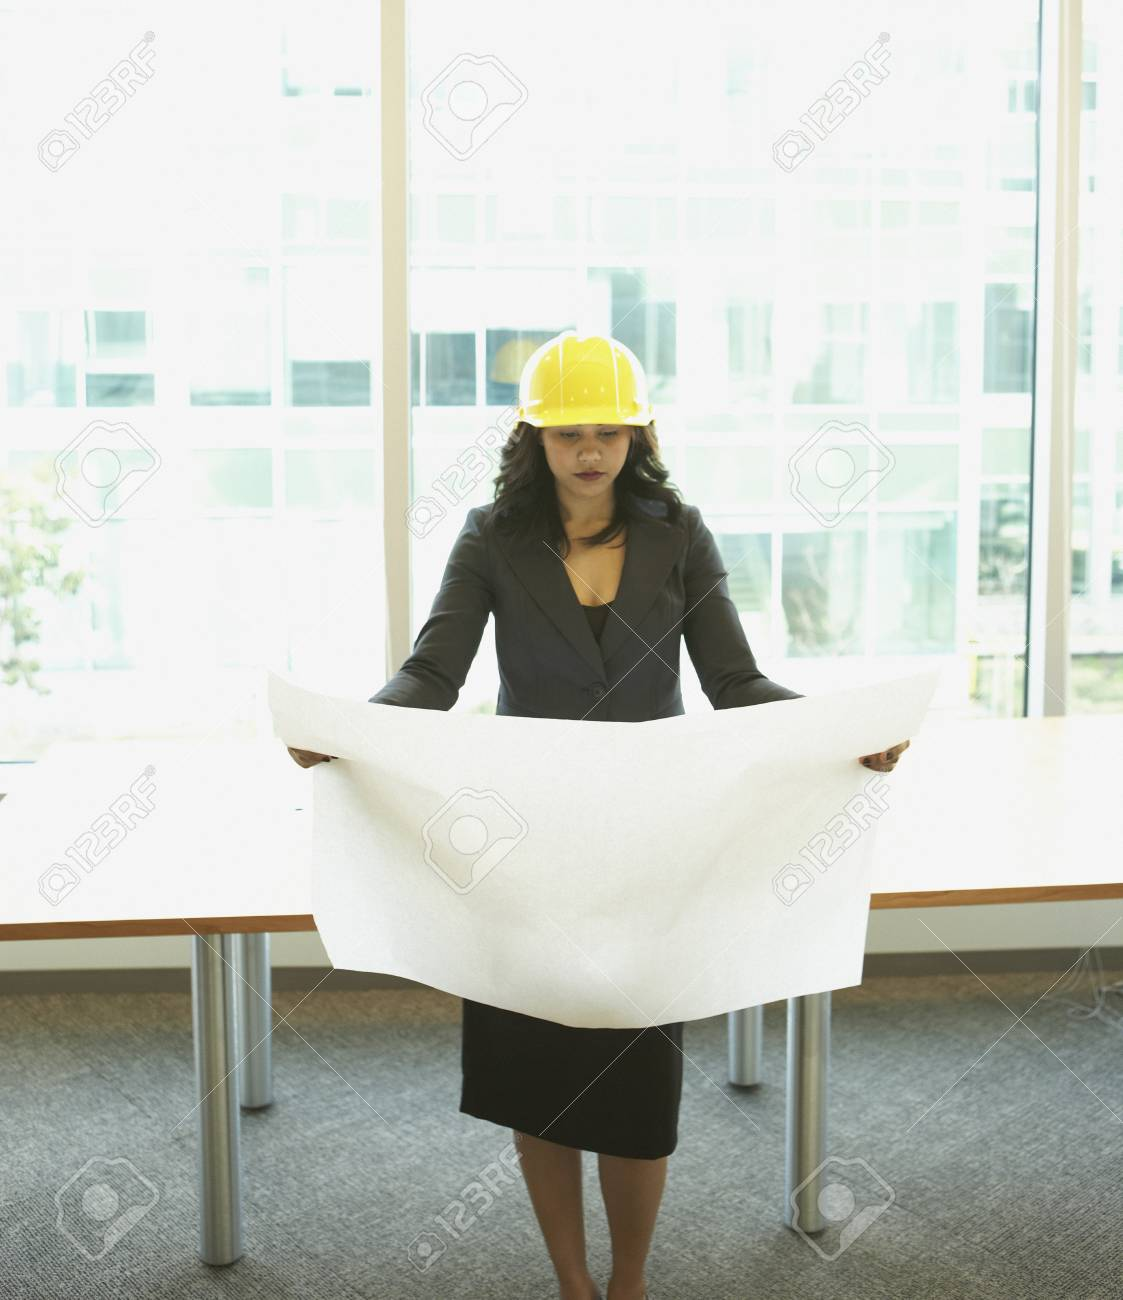 Businesswoman wearing hard had and looking at blueprints Stock Photo - 16091567